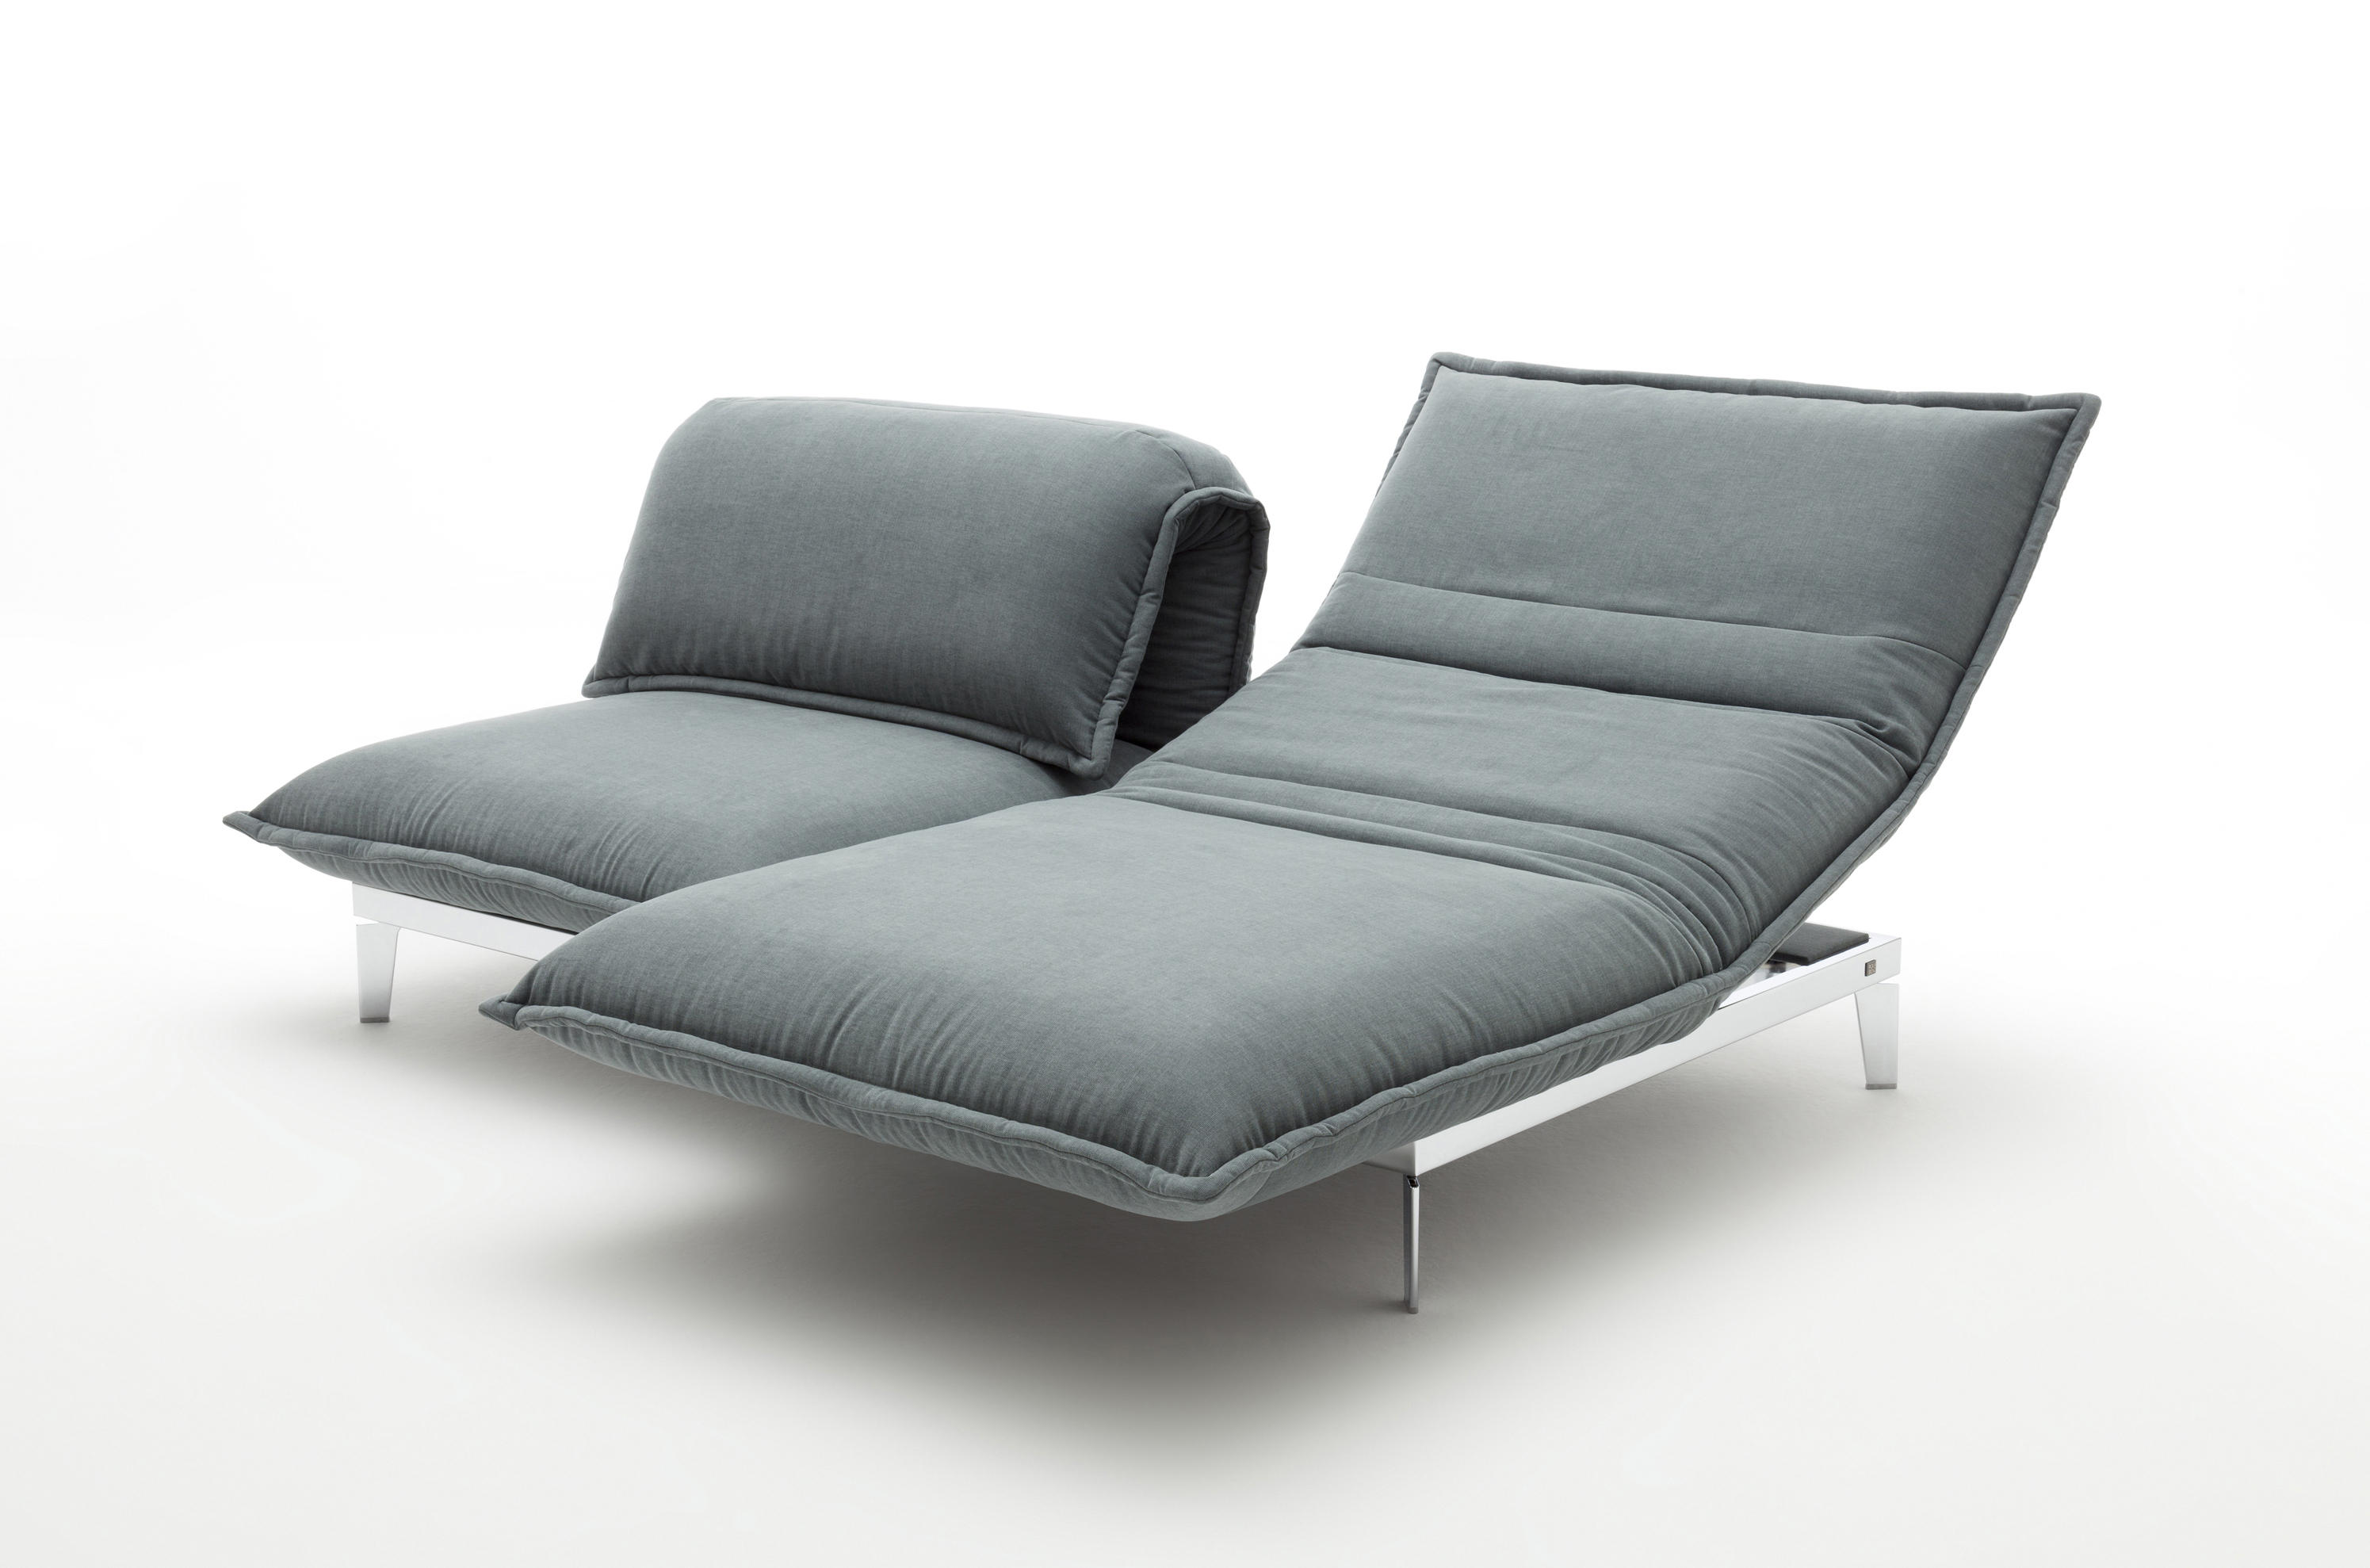 Benz Couch Rolf Benz Nova Sofas From Rolf Benz Architonic